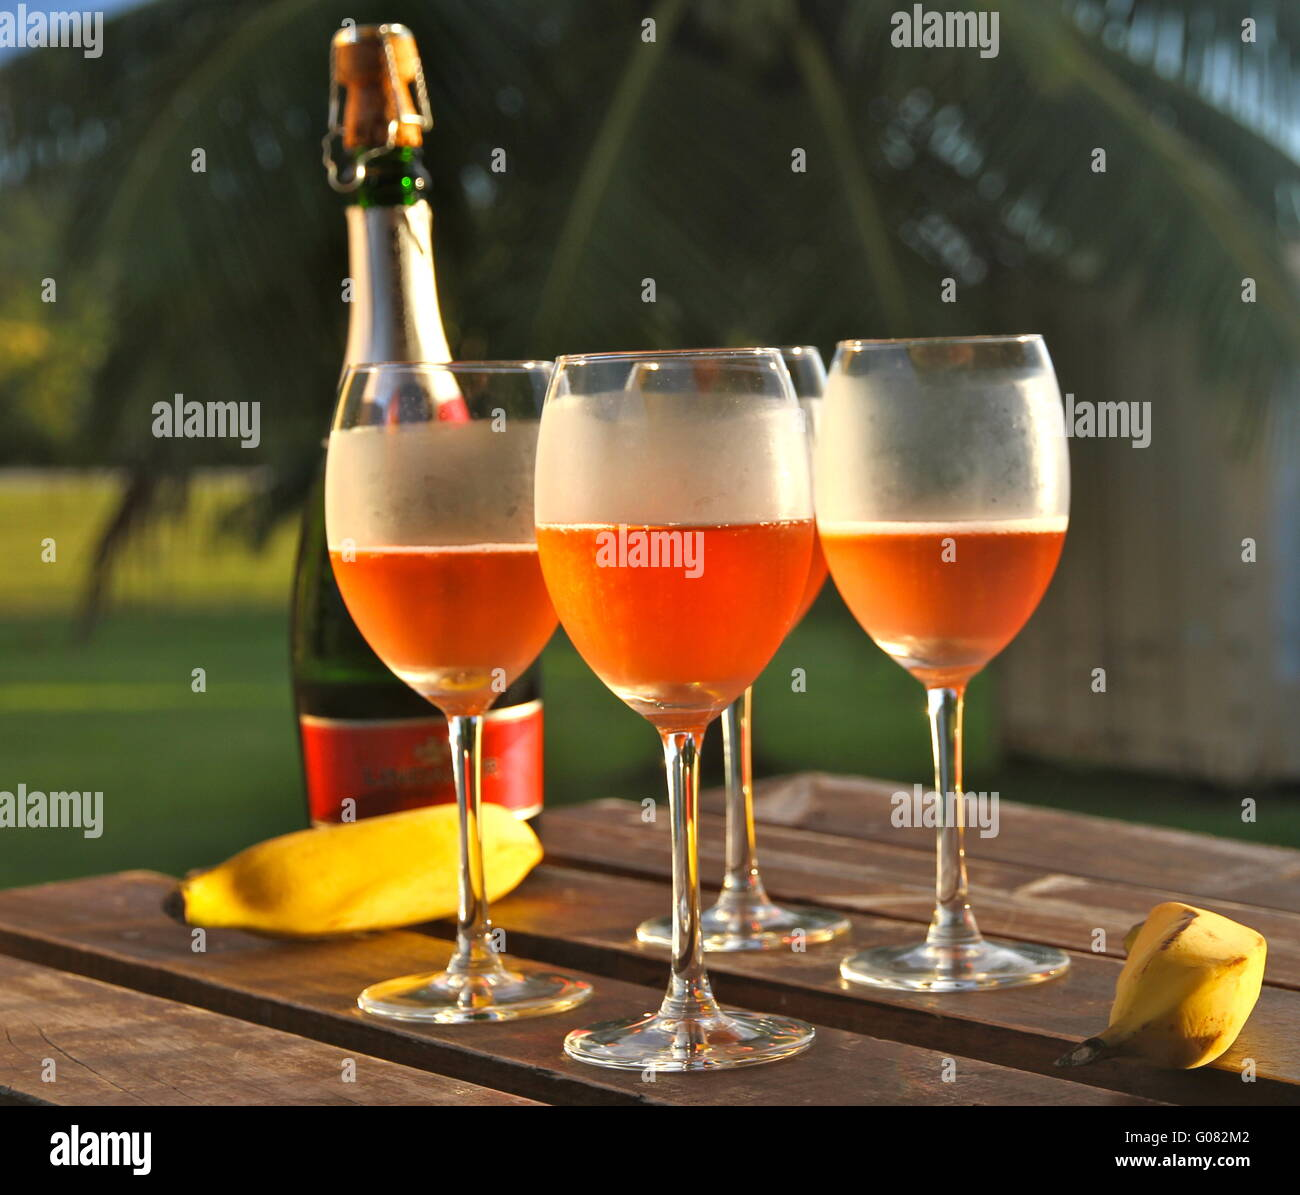 glasses of wine in the evening light - Stock Image